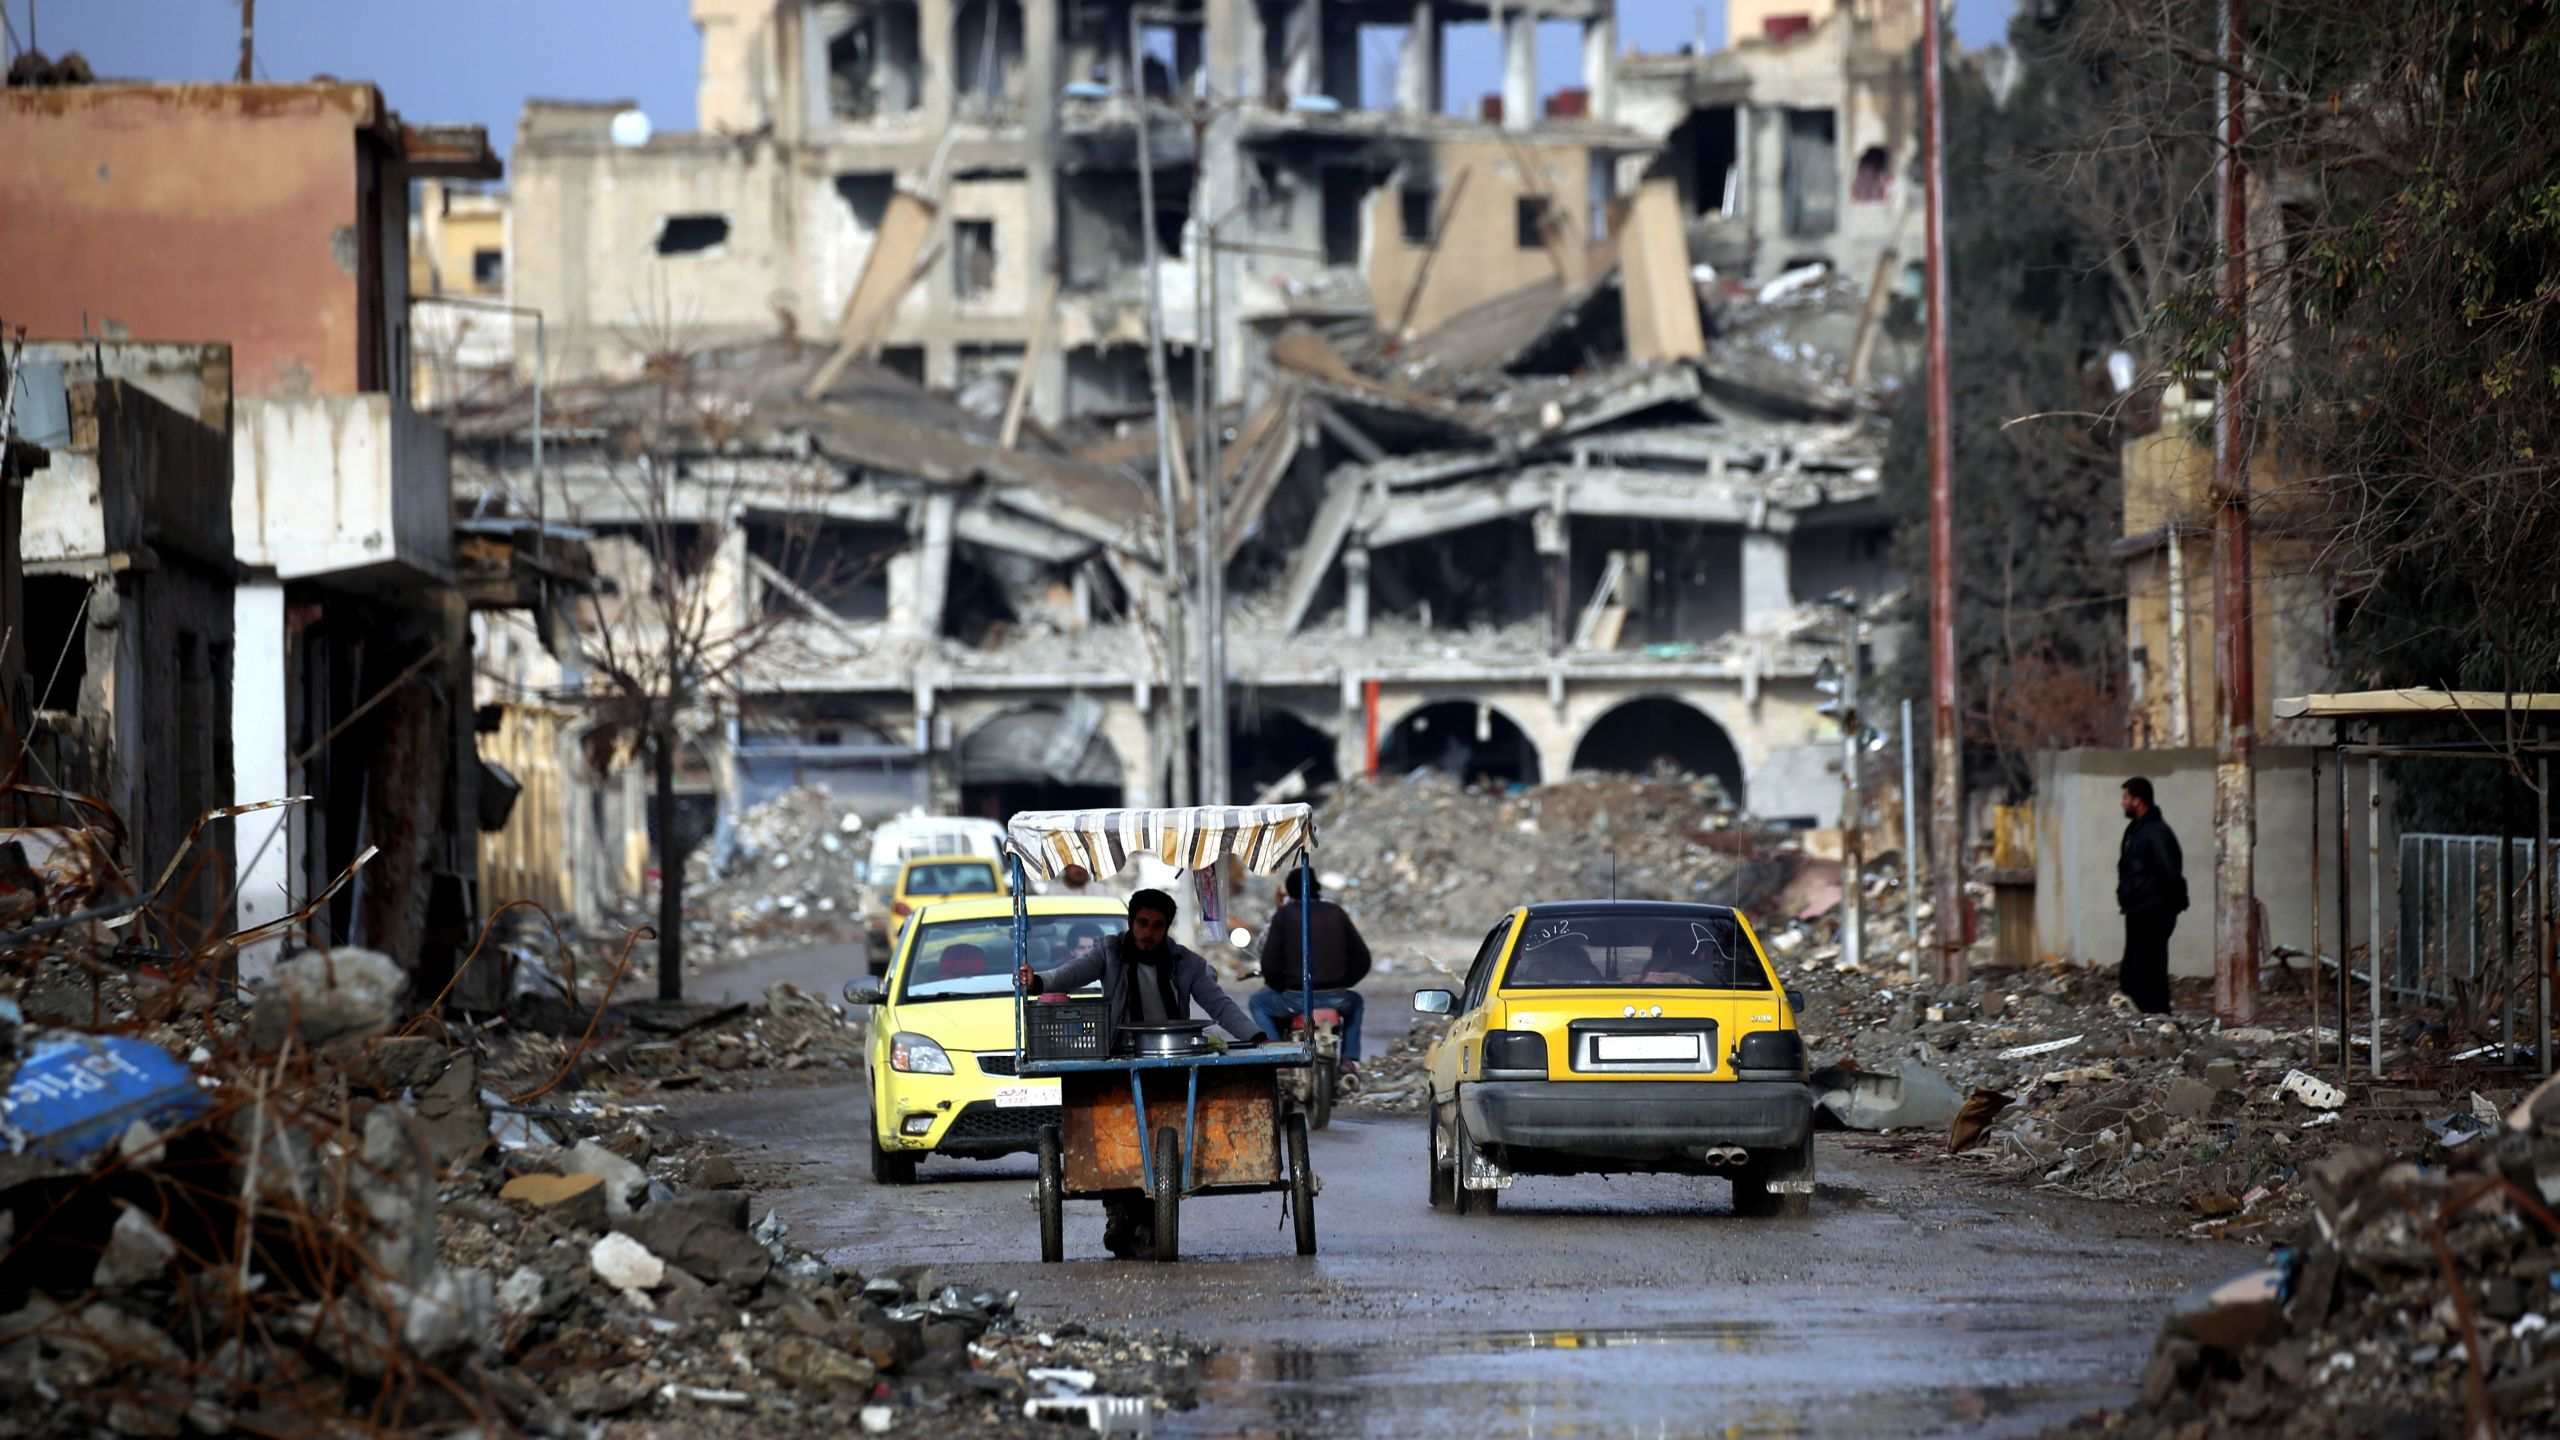 Syrians are shown traveling along a destroyed street in Raqqa on February 18, 2018. (Credit: Delil Souleiman/AFP/Getty Images)